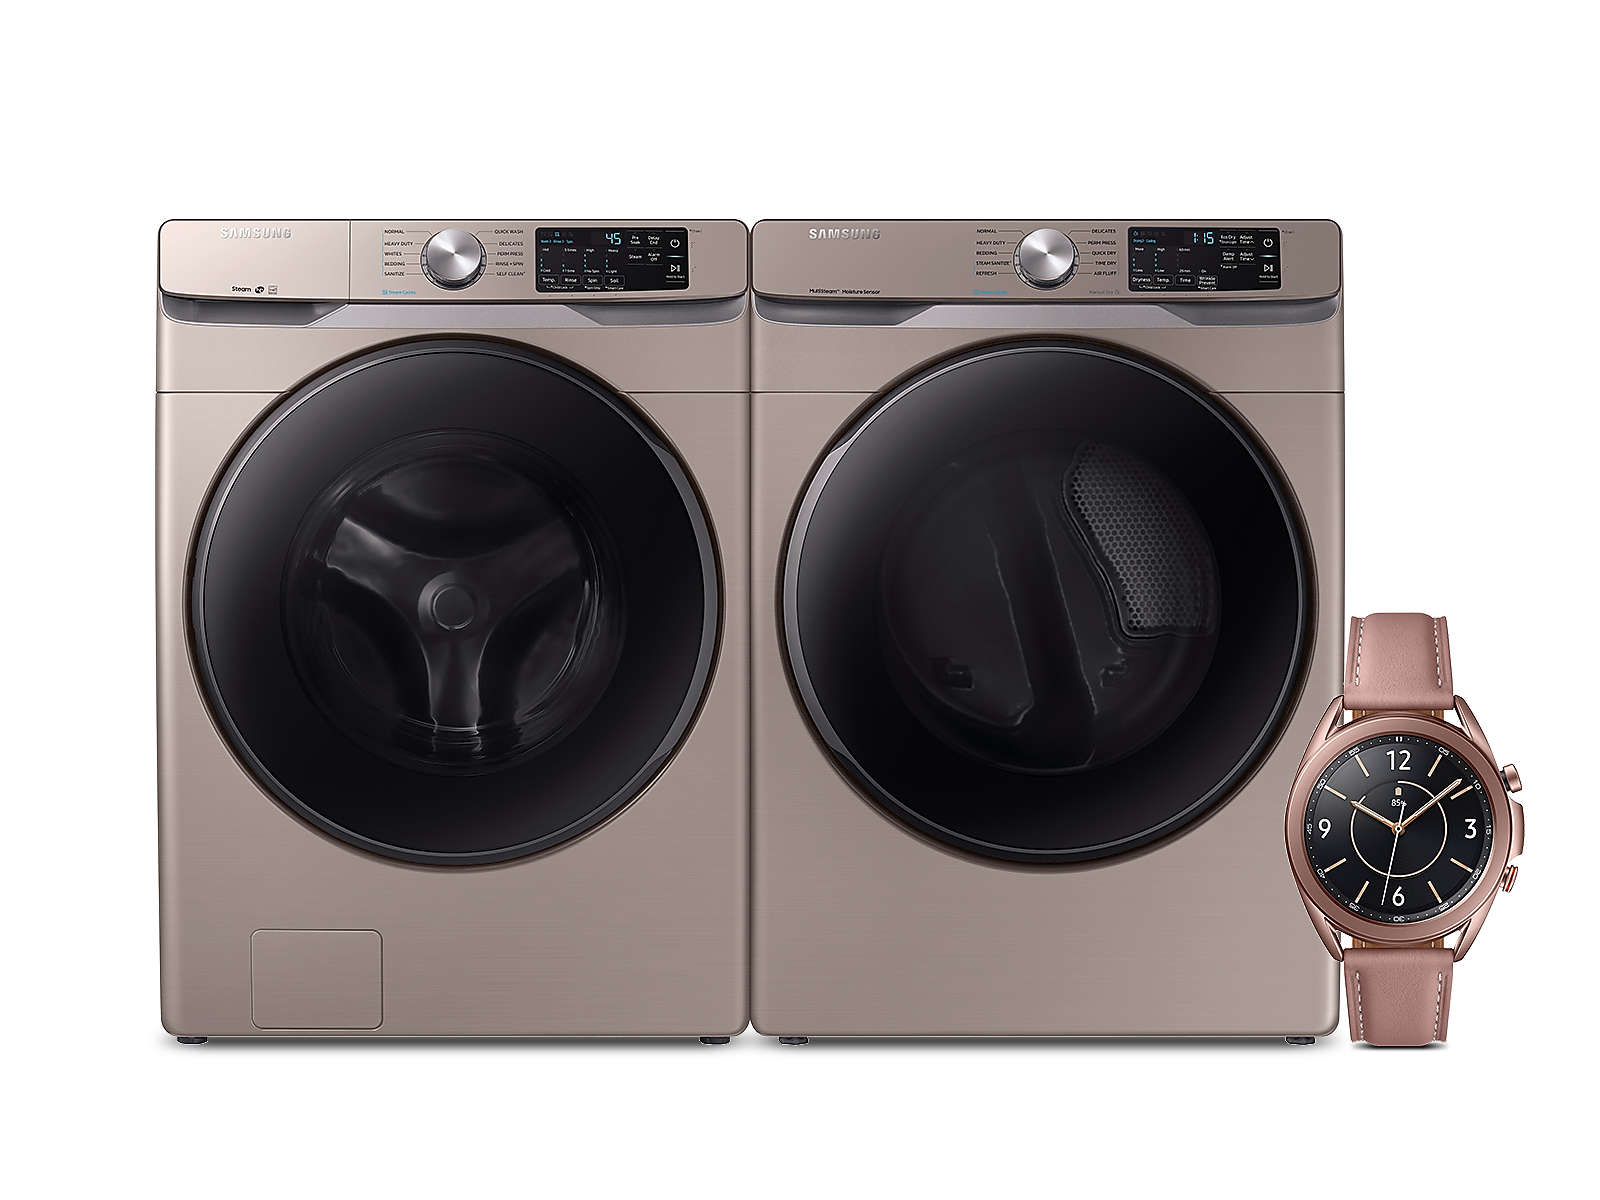 Samsung coupon: Samsung 4.5 cu. ft. Front Load Washer, 7.5 cu. ft. Steam Sanitize+ Dryer and 41mm Galaxy Watch3 Premium Package